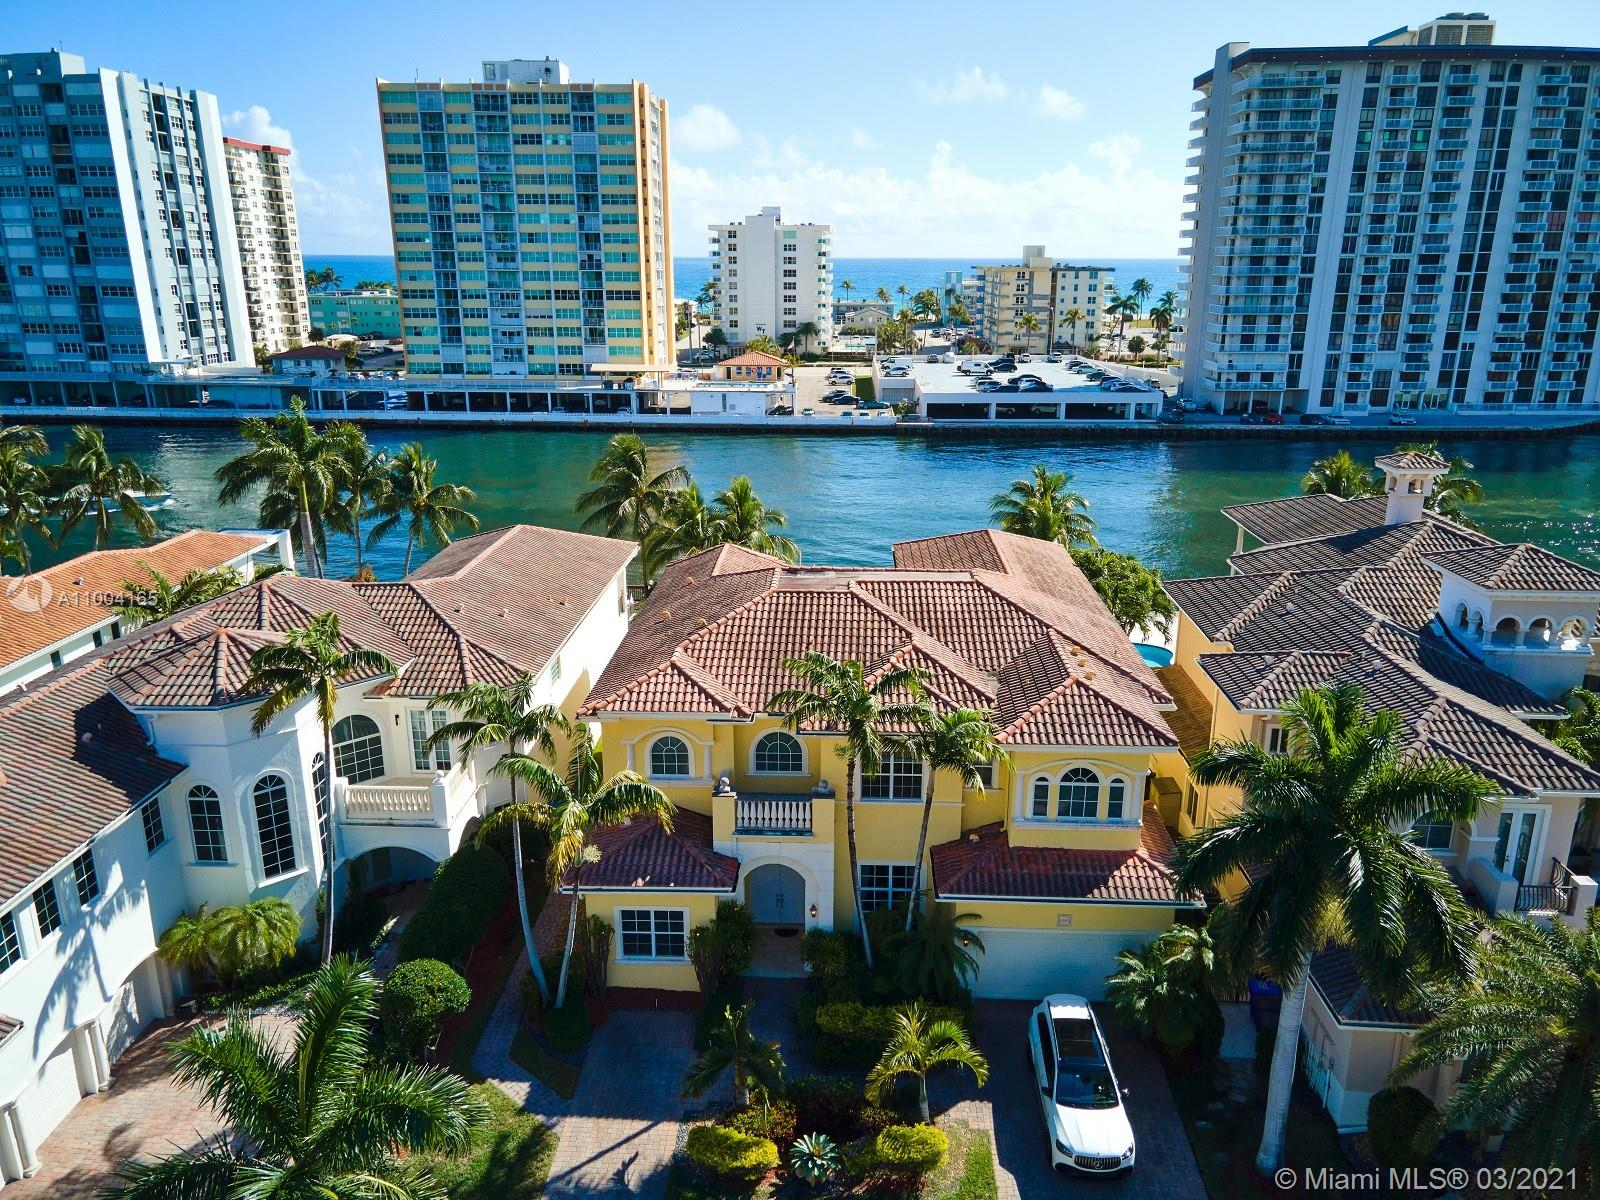 Rare Find! Spectacular, luxurious, and highly sought-after Harbor Islands Waterfront estate in exclusive Harbor Islands Private Island Community. This home features 6 Bedrooms and 7.5 Baths, High ceilings 1st and 2nd level, windows in every bedroom, which brings in a lot of natural light to each bedroom. 5529 sq. ft of living space, sits on an oversized lot, with a dock, boat lift, pool plus jacuzzi. Custom luxury walk-in closets in each bedroom. Marble floors throughout and pristine wood floors in each of the bedrooms. Stunning motorized crystal chandelier in the living room. Private guarded community, clubhouse, tennis courts, private park with walking trails, and many other amenities. Please read broker remarks!